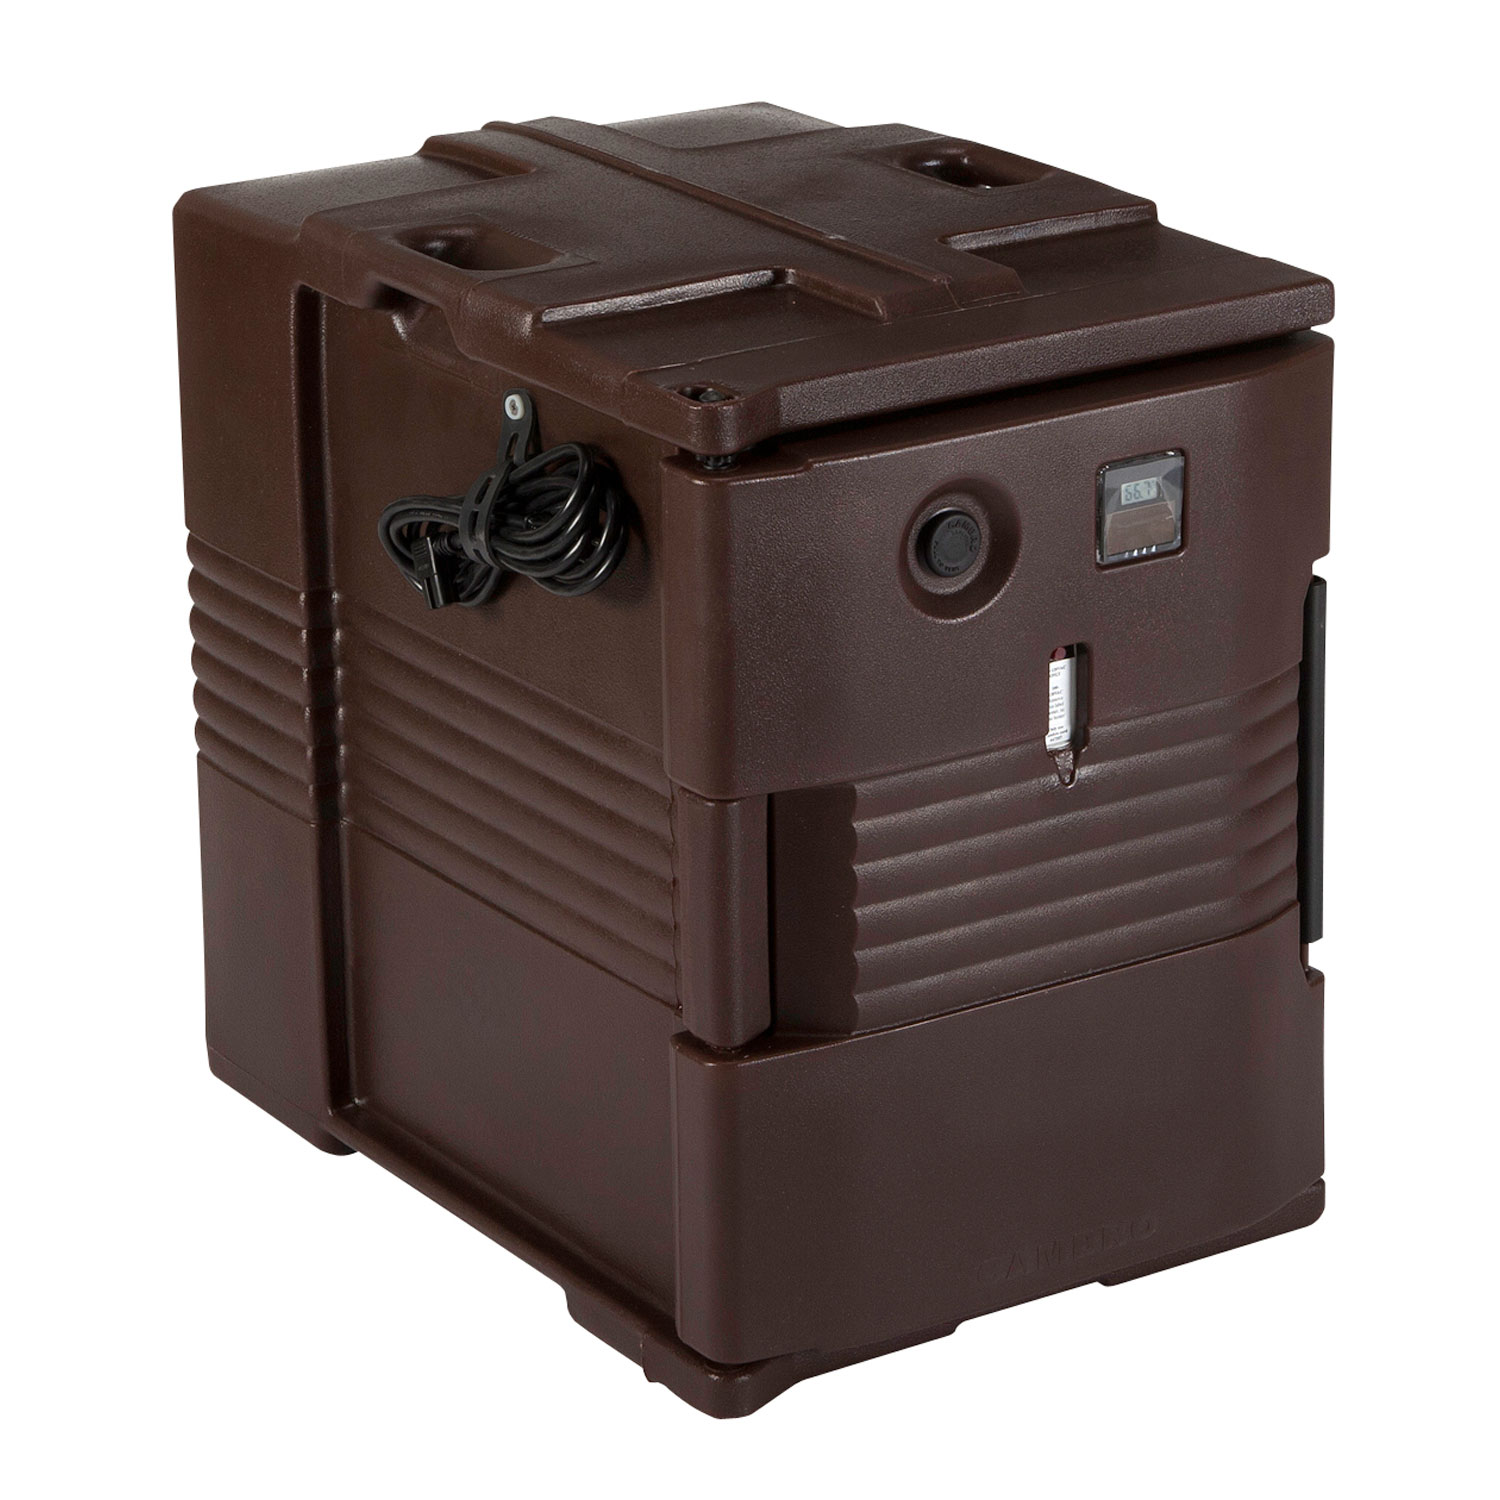 Cambro UPCH400131 Camcarrier Hot Ultra Pancarrier - Front Loading, Dark Brown 110v